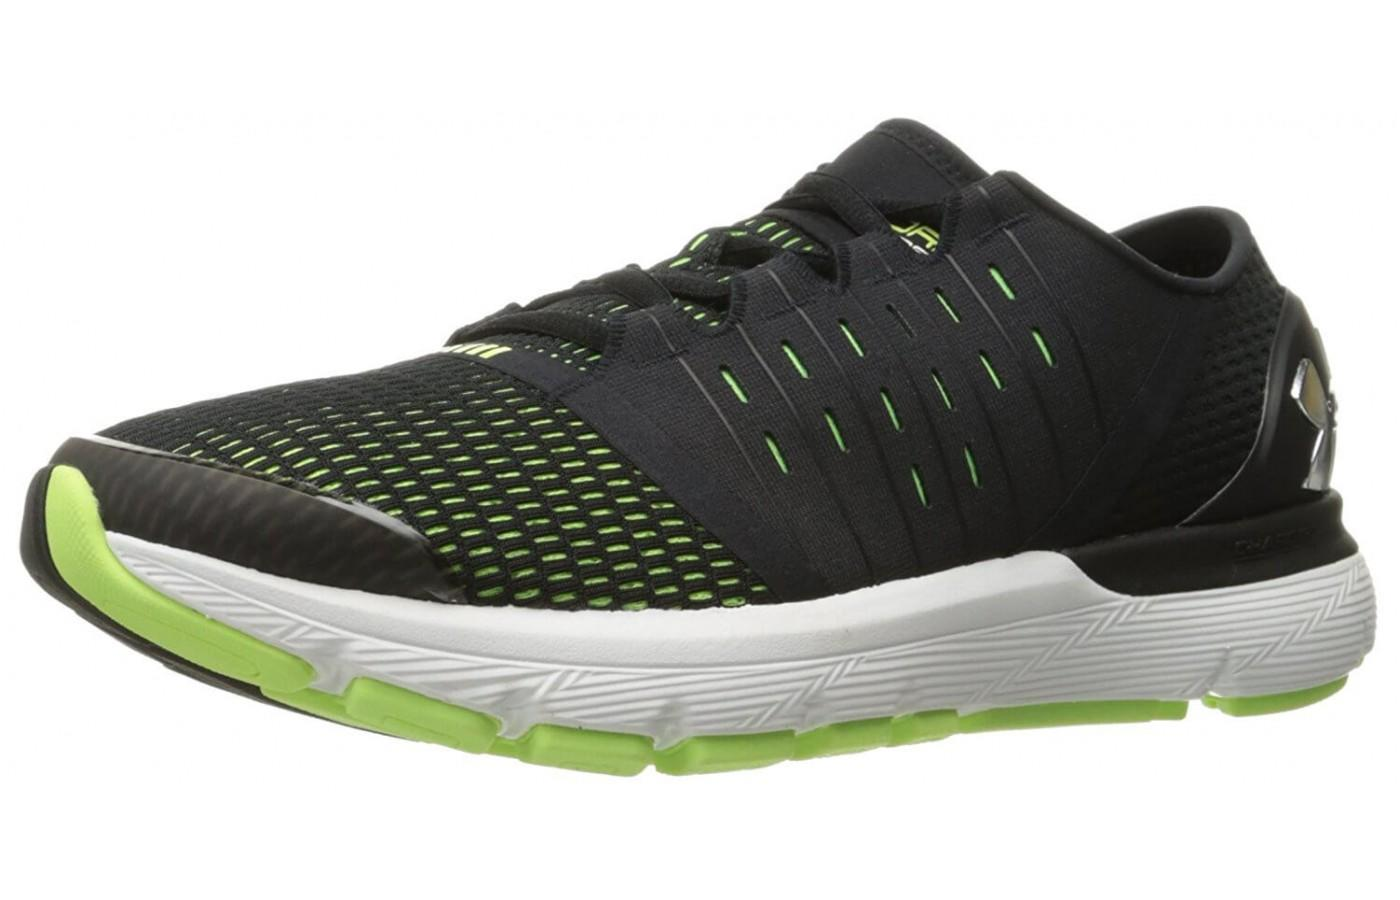 The Under Armour Speedform Europa has a highly cushioned midsole.